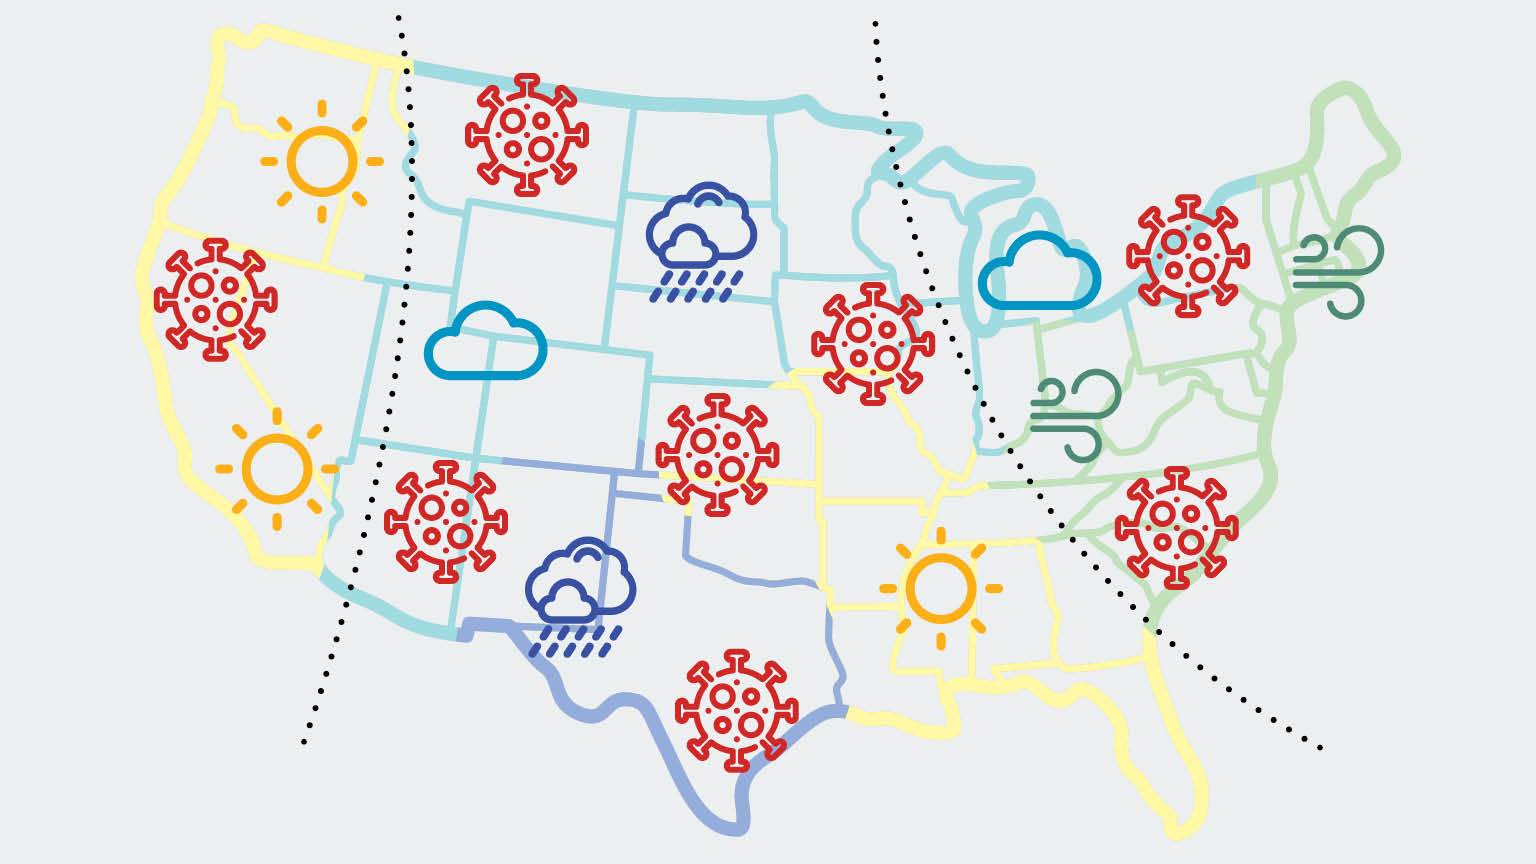 A graphic map of the U.S. with weather symbols and covid cells spread across the states.